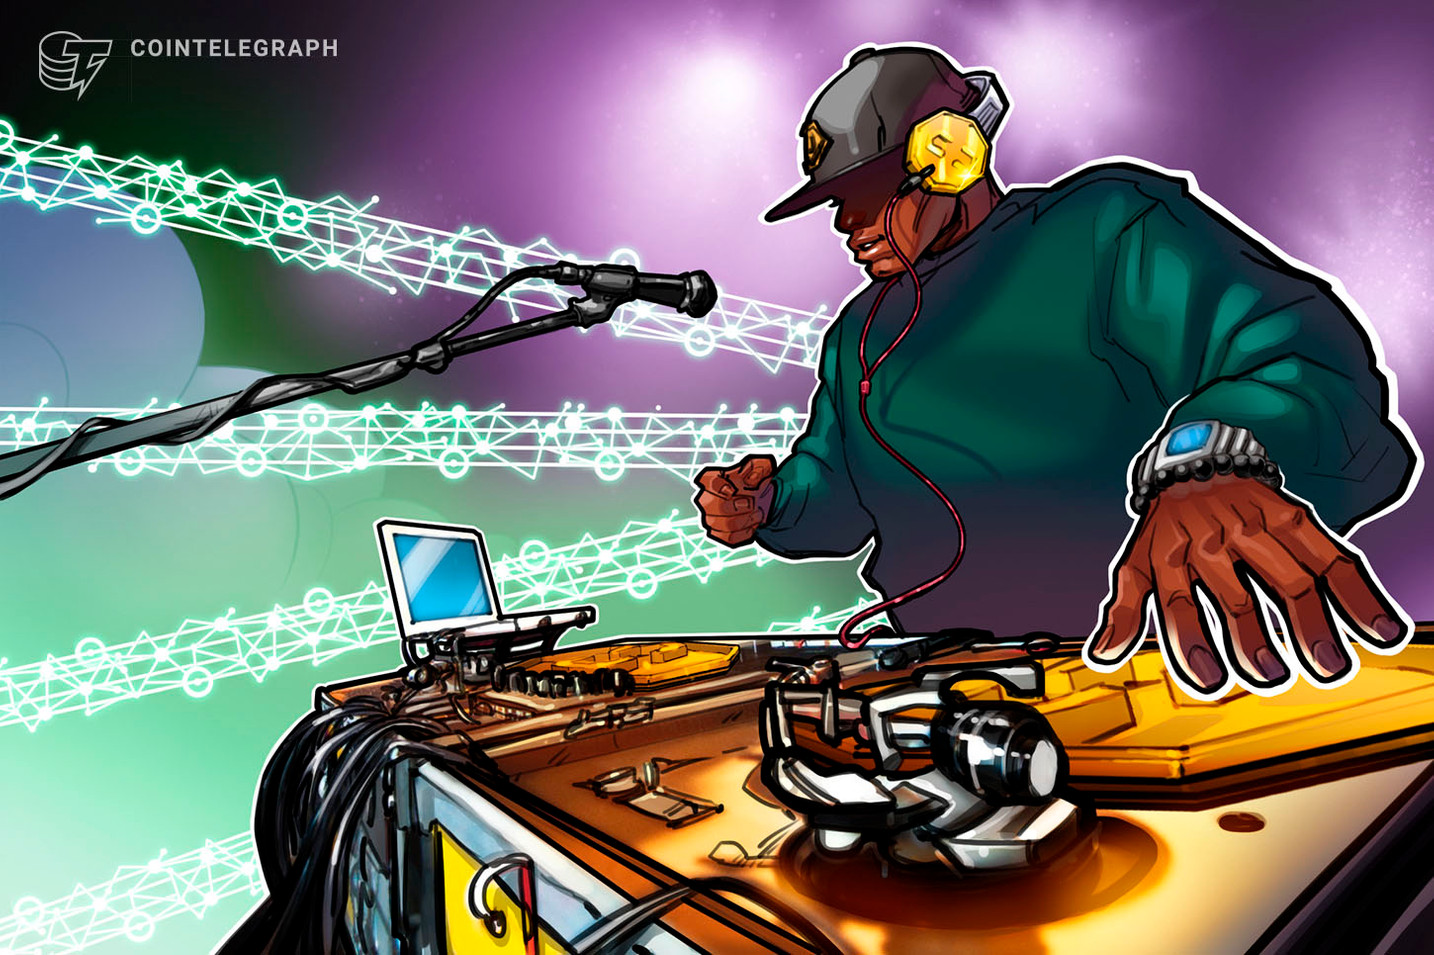 6 crypto-centric songs you may not have heard